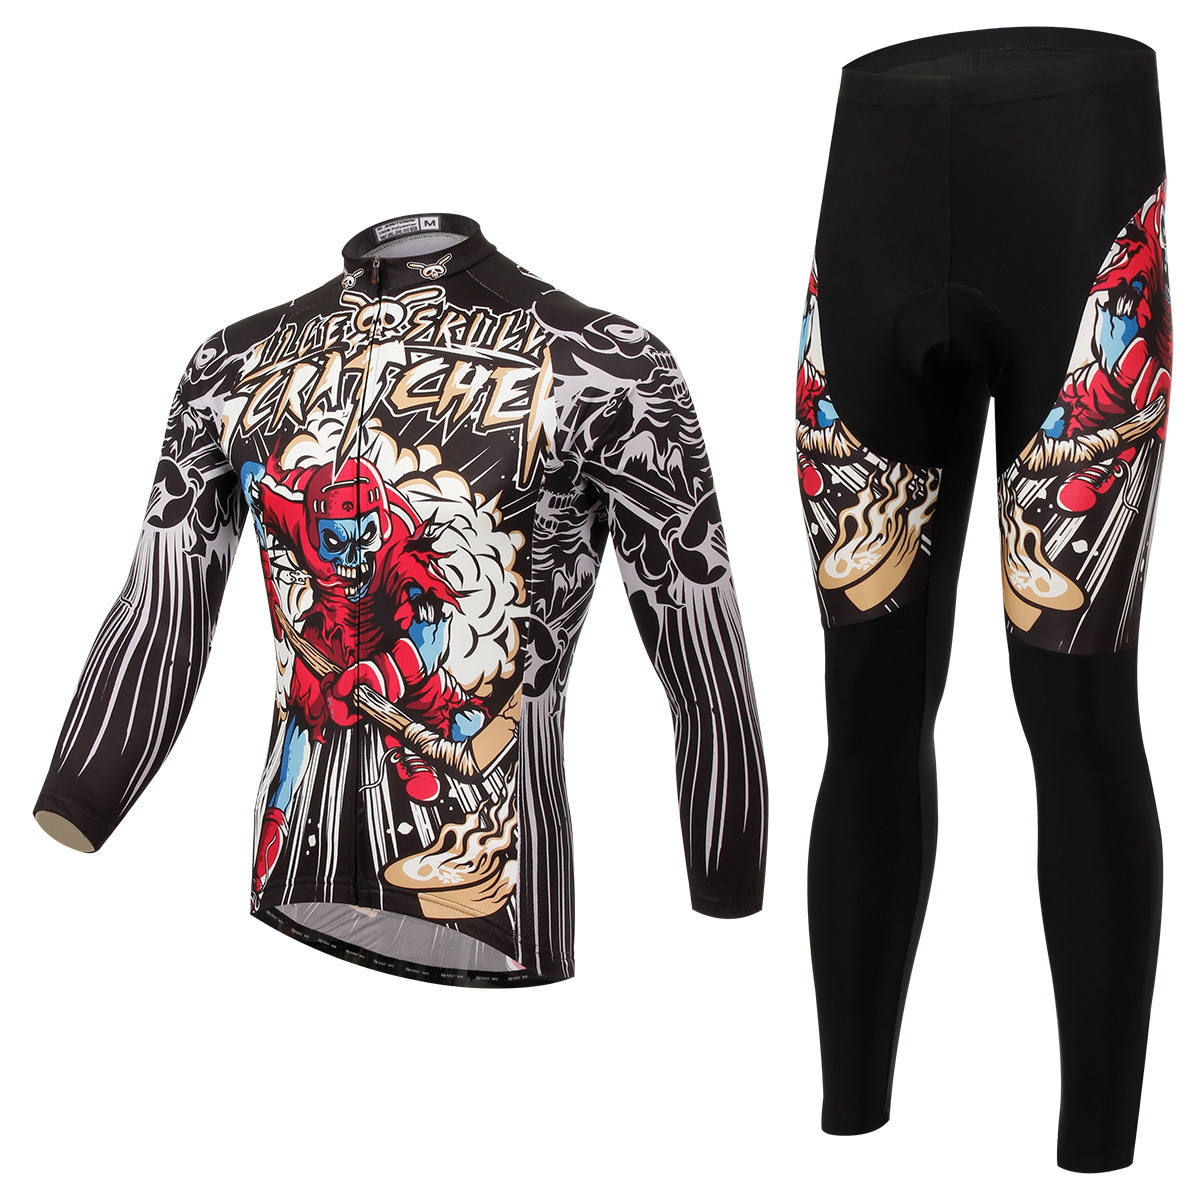 XINTOWN Spring Pro Long Sleeve Cycling Jersey Sets Breathable 3D Padded Sportswear Mountain Bicycle Bike Cycling Clothing Set xintown new 2018 spring cycling jersey set long sleeve 3d gel padded sets bike clothing mtb protective wear cycling clothes sets